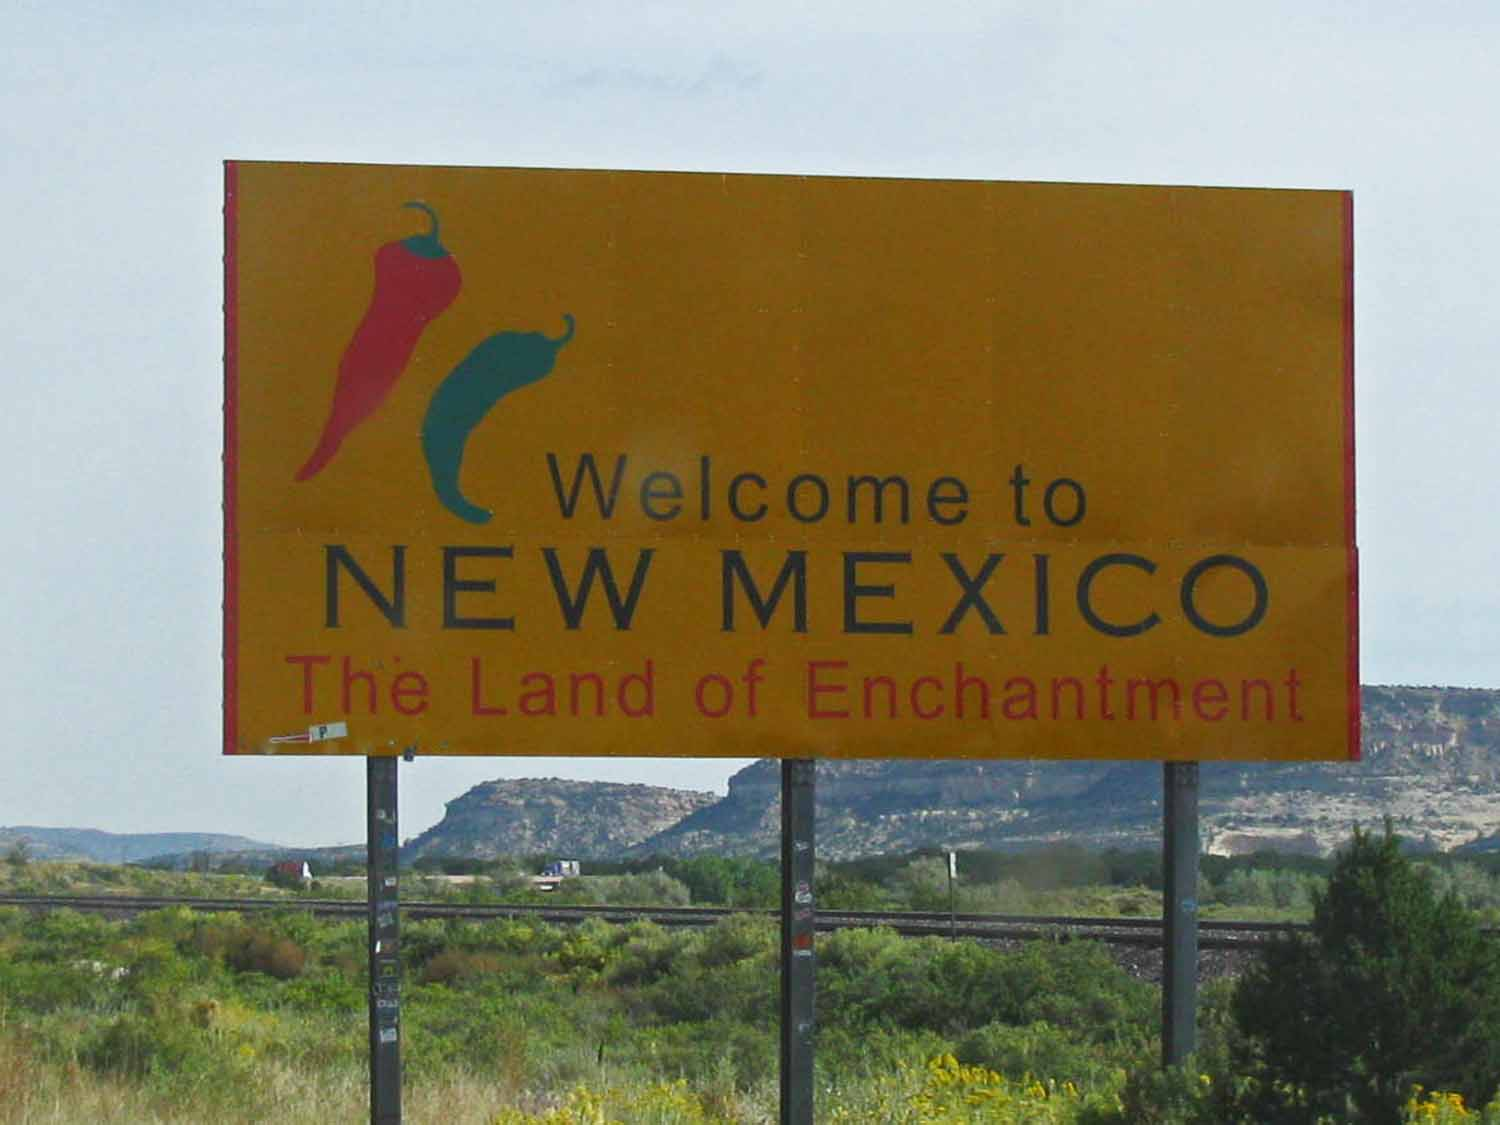 Next stop - New Mexico